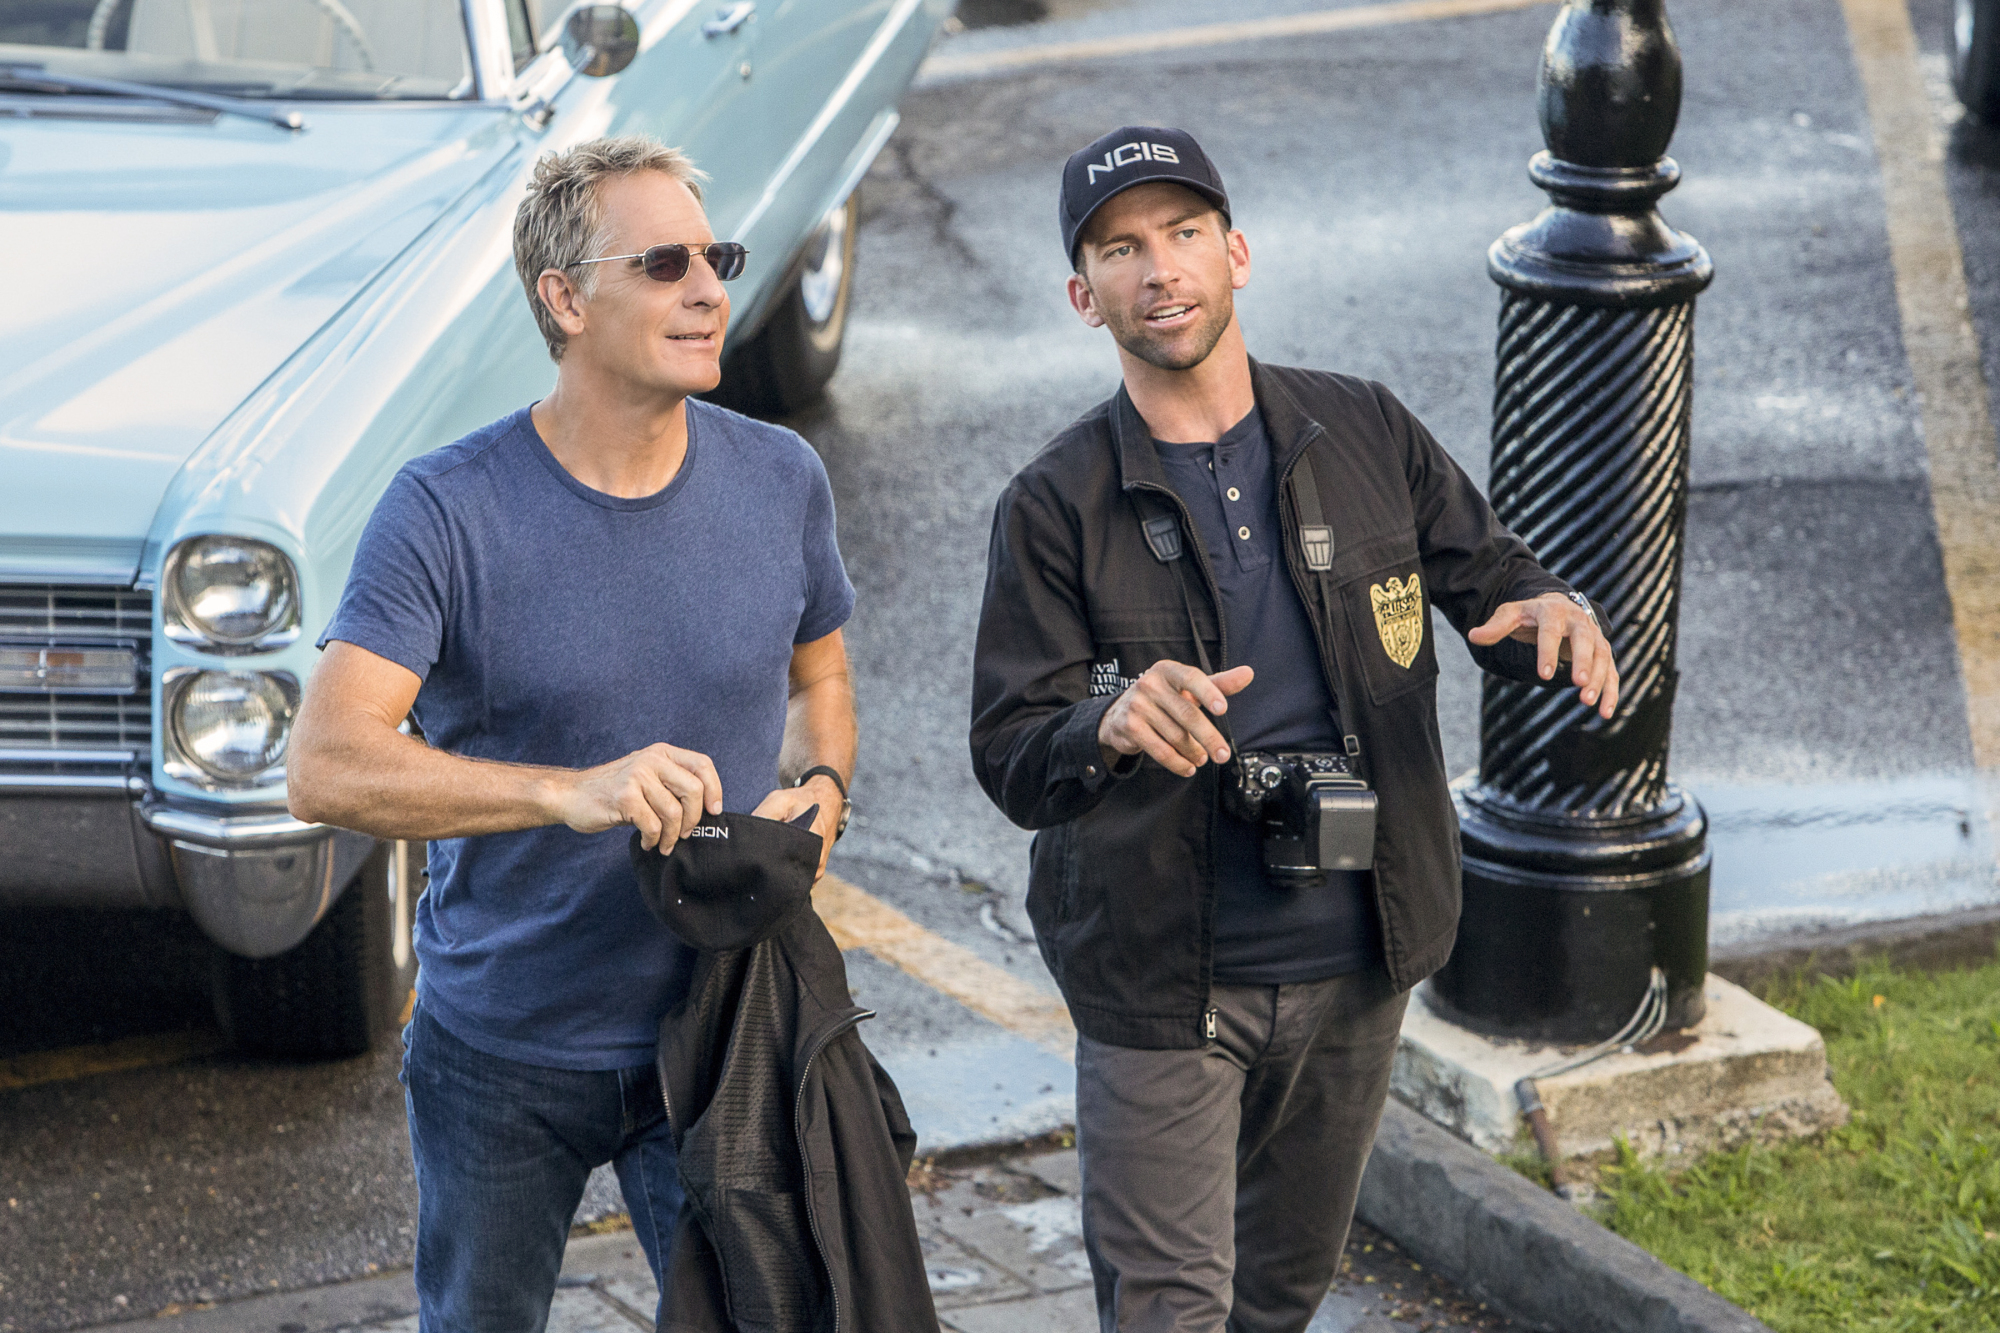 Scott Bakula as Special Agent Dwayne Pride and Lucas Black as Special Agent Christopher Lasalle